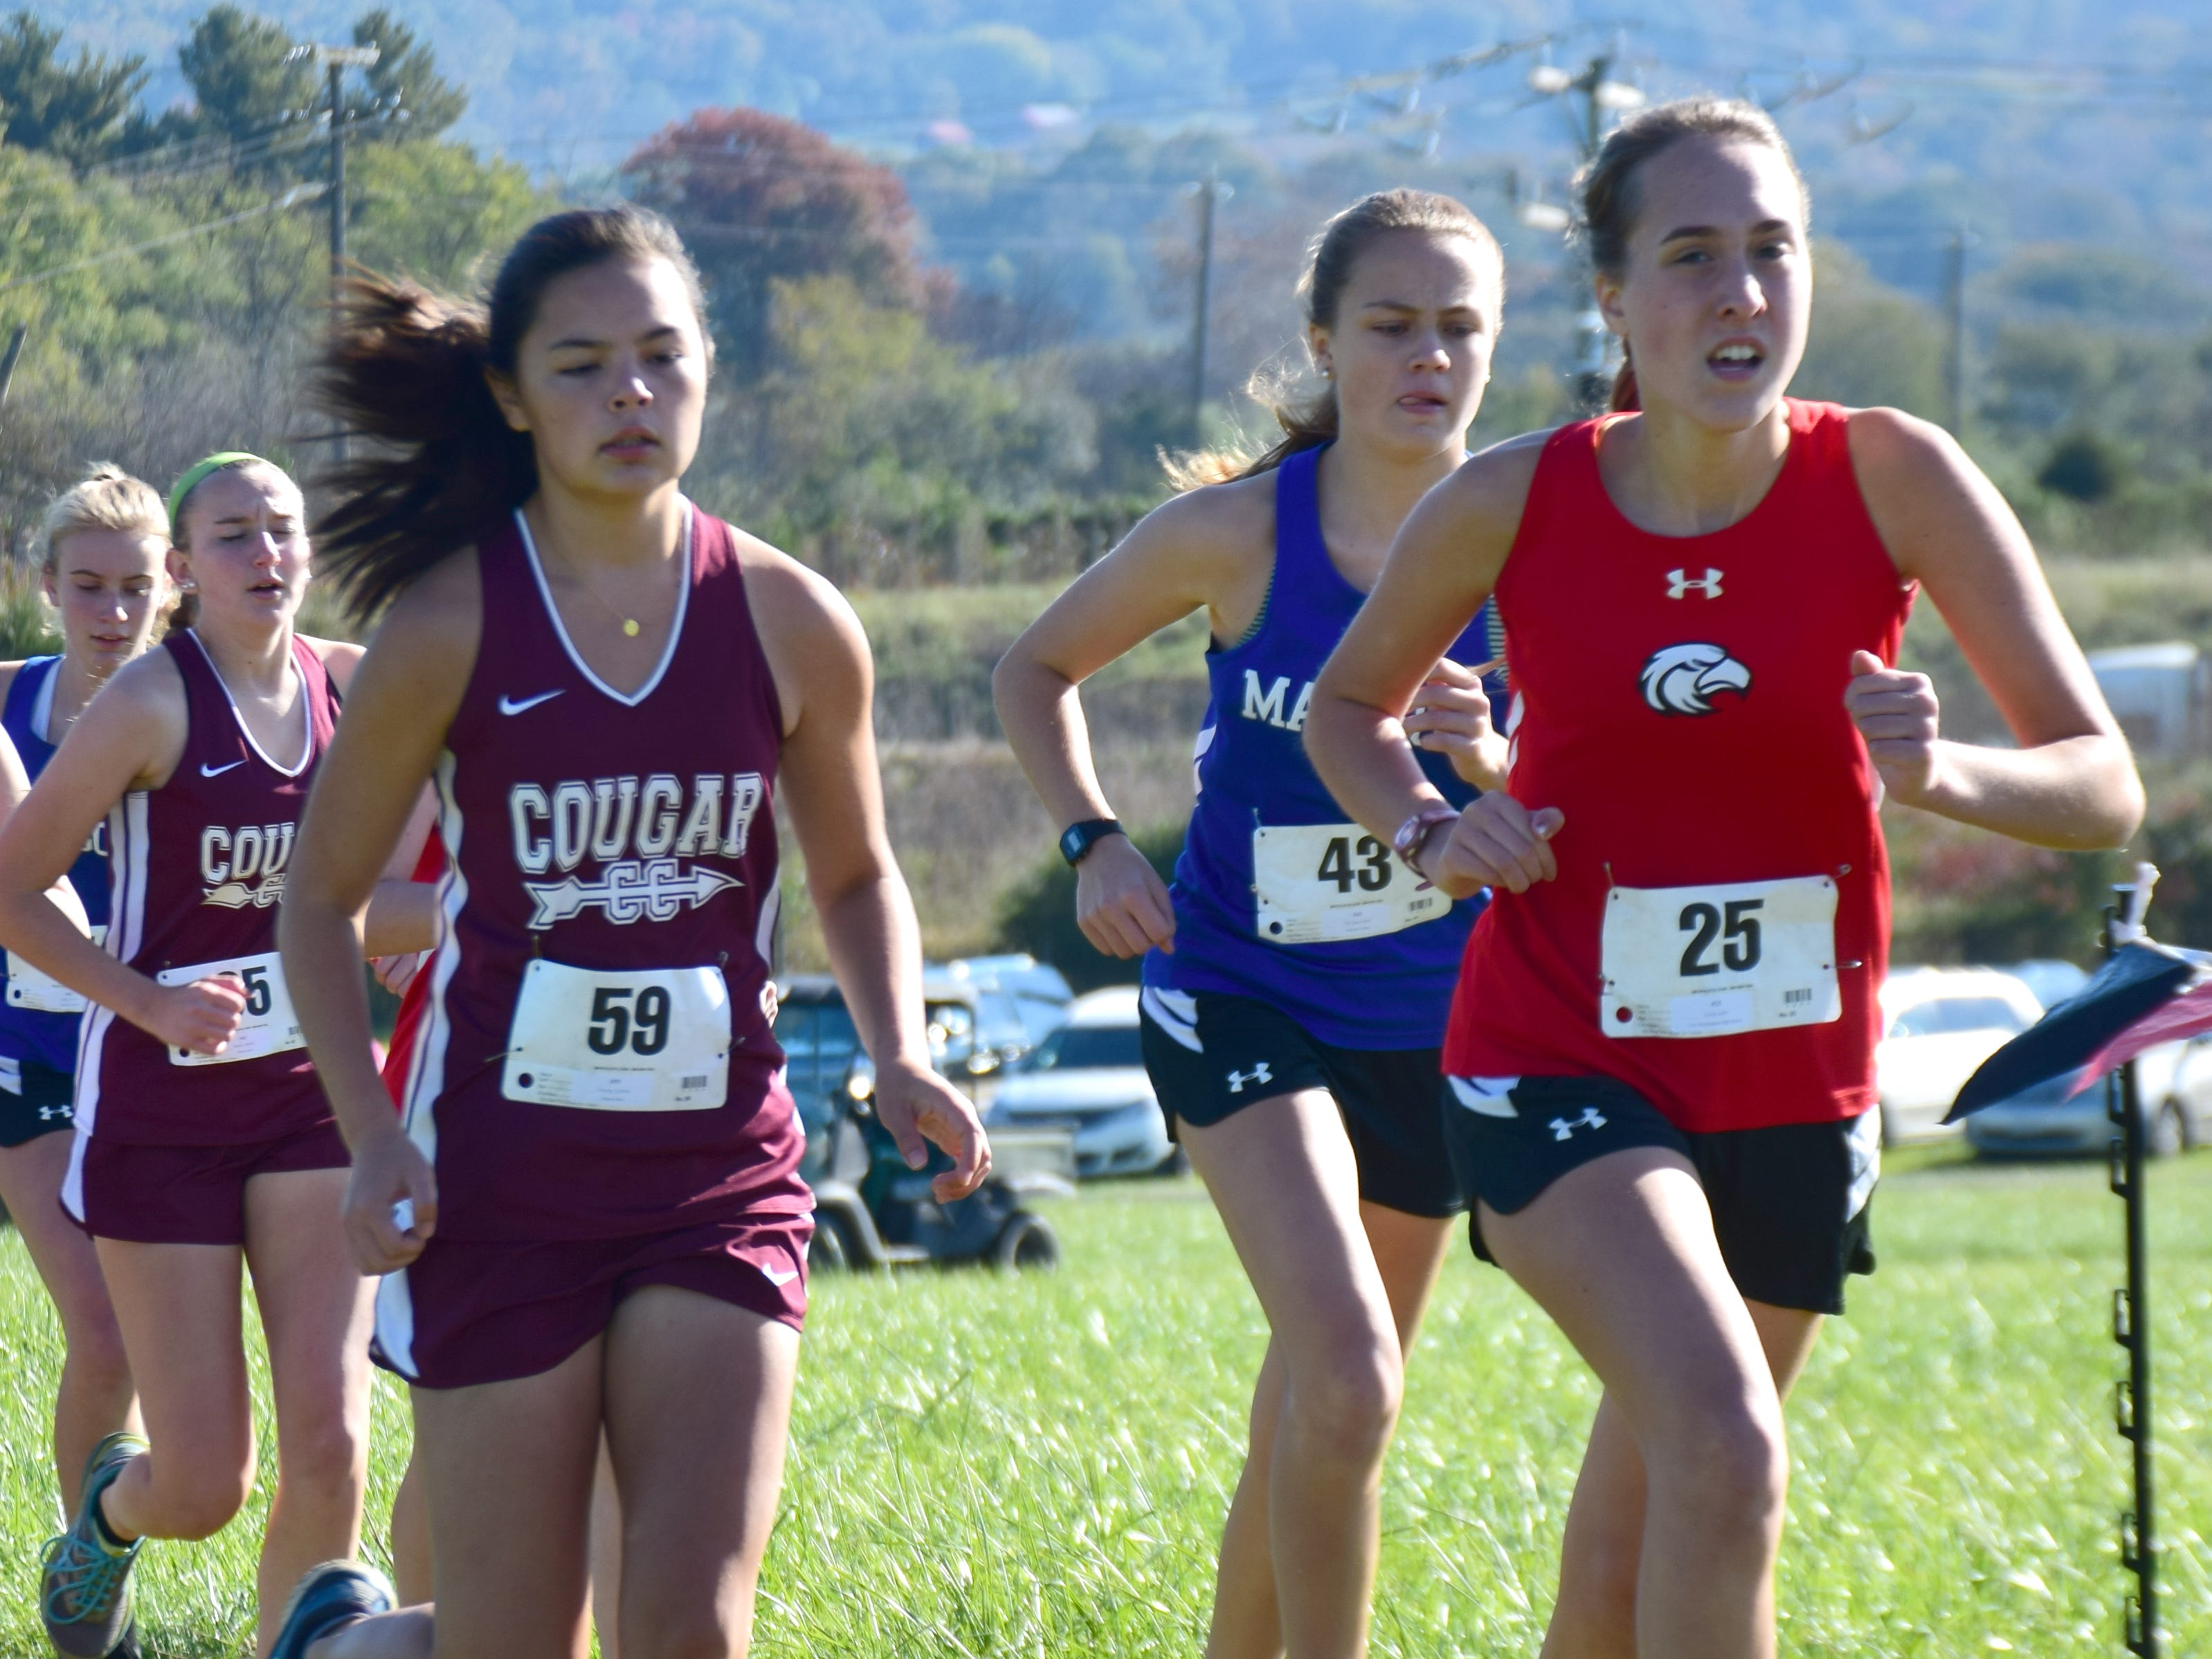 Stuarts Draft's Caroline Cheung, left, competes in the girls race at the VHSL Class 2, Region B Cross Country Championships on Tuesday, Oct. 30, 2018, at New Market Battlefield Park in New Market, Va.